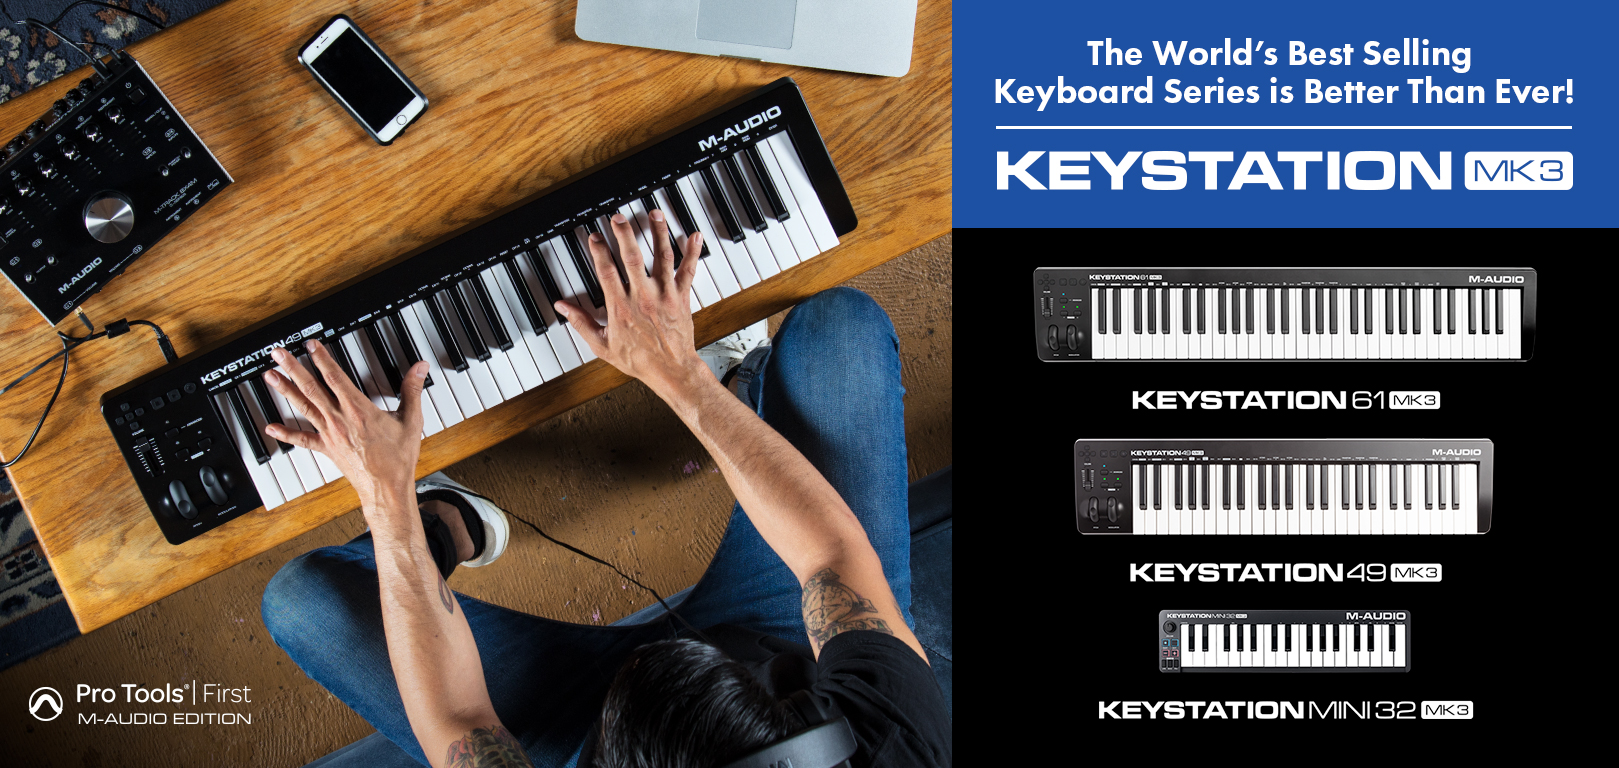 M-Audio Introduced Keystation MK3 MIDI Keyboard Controller Series!